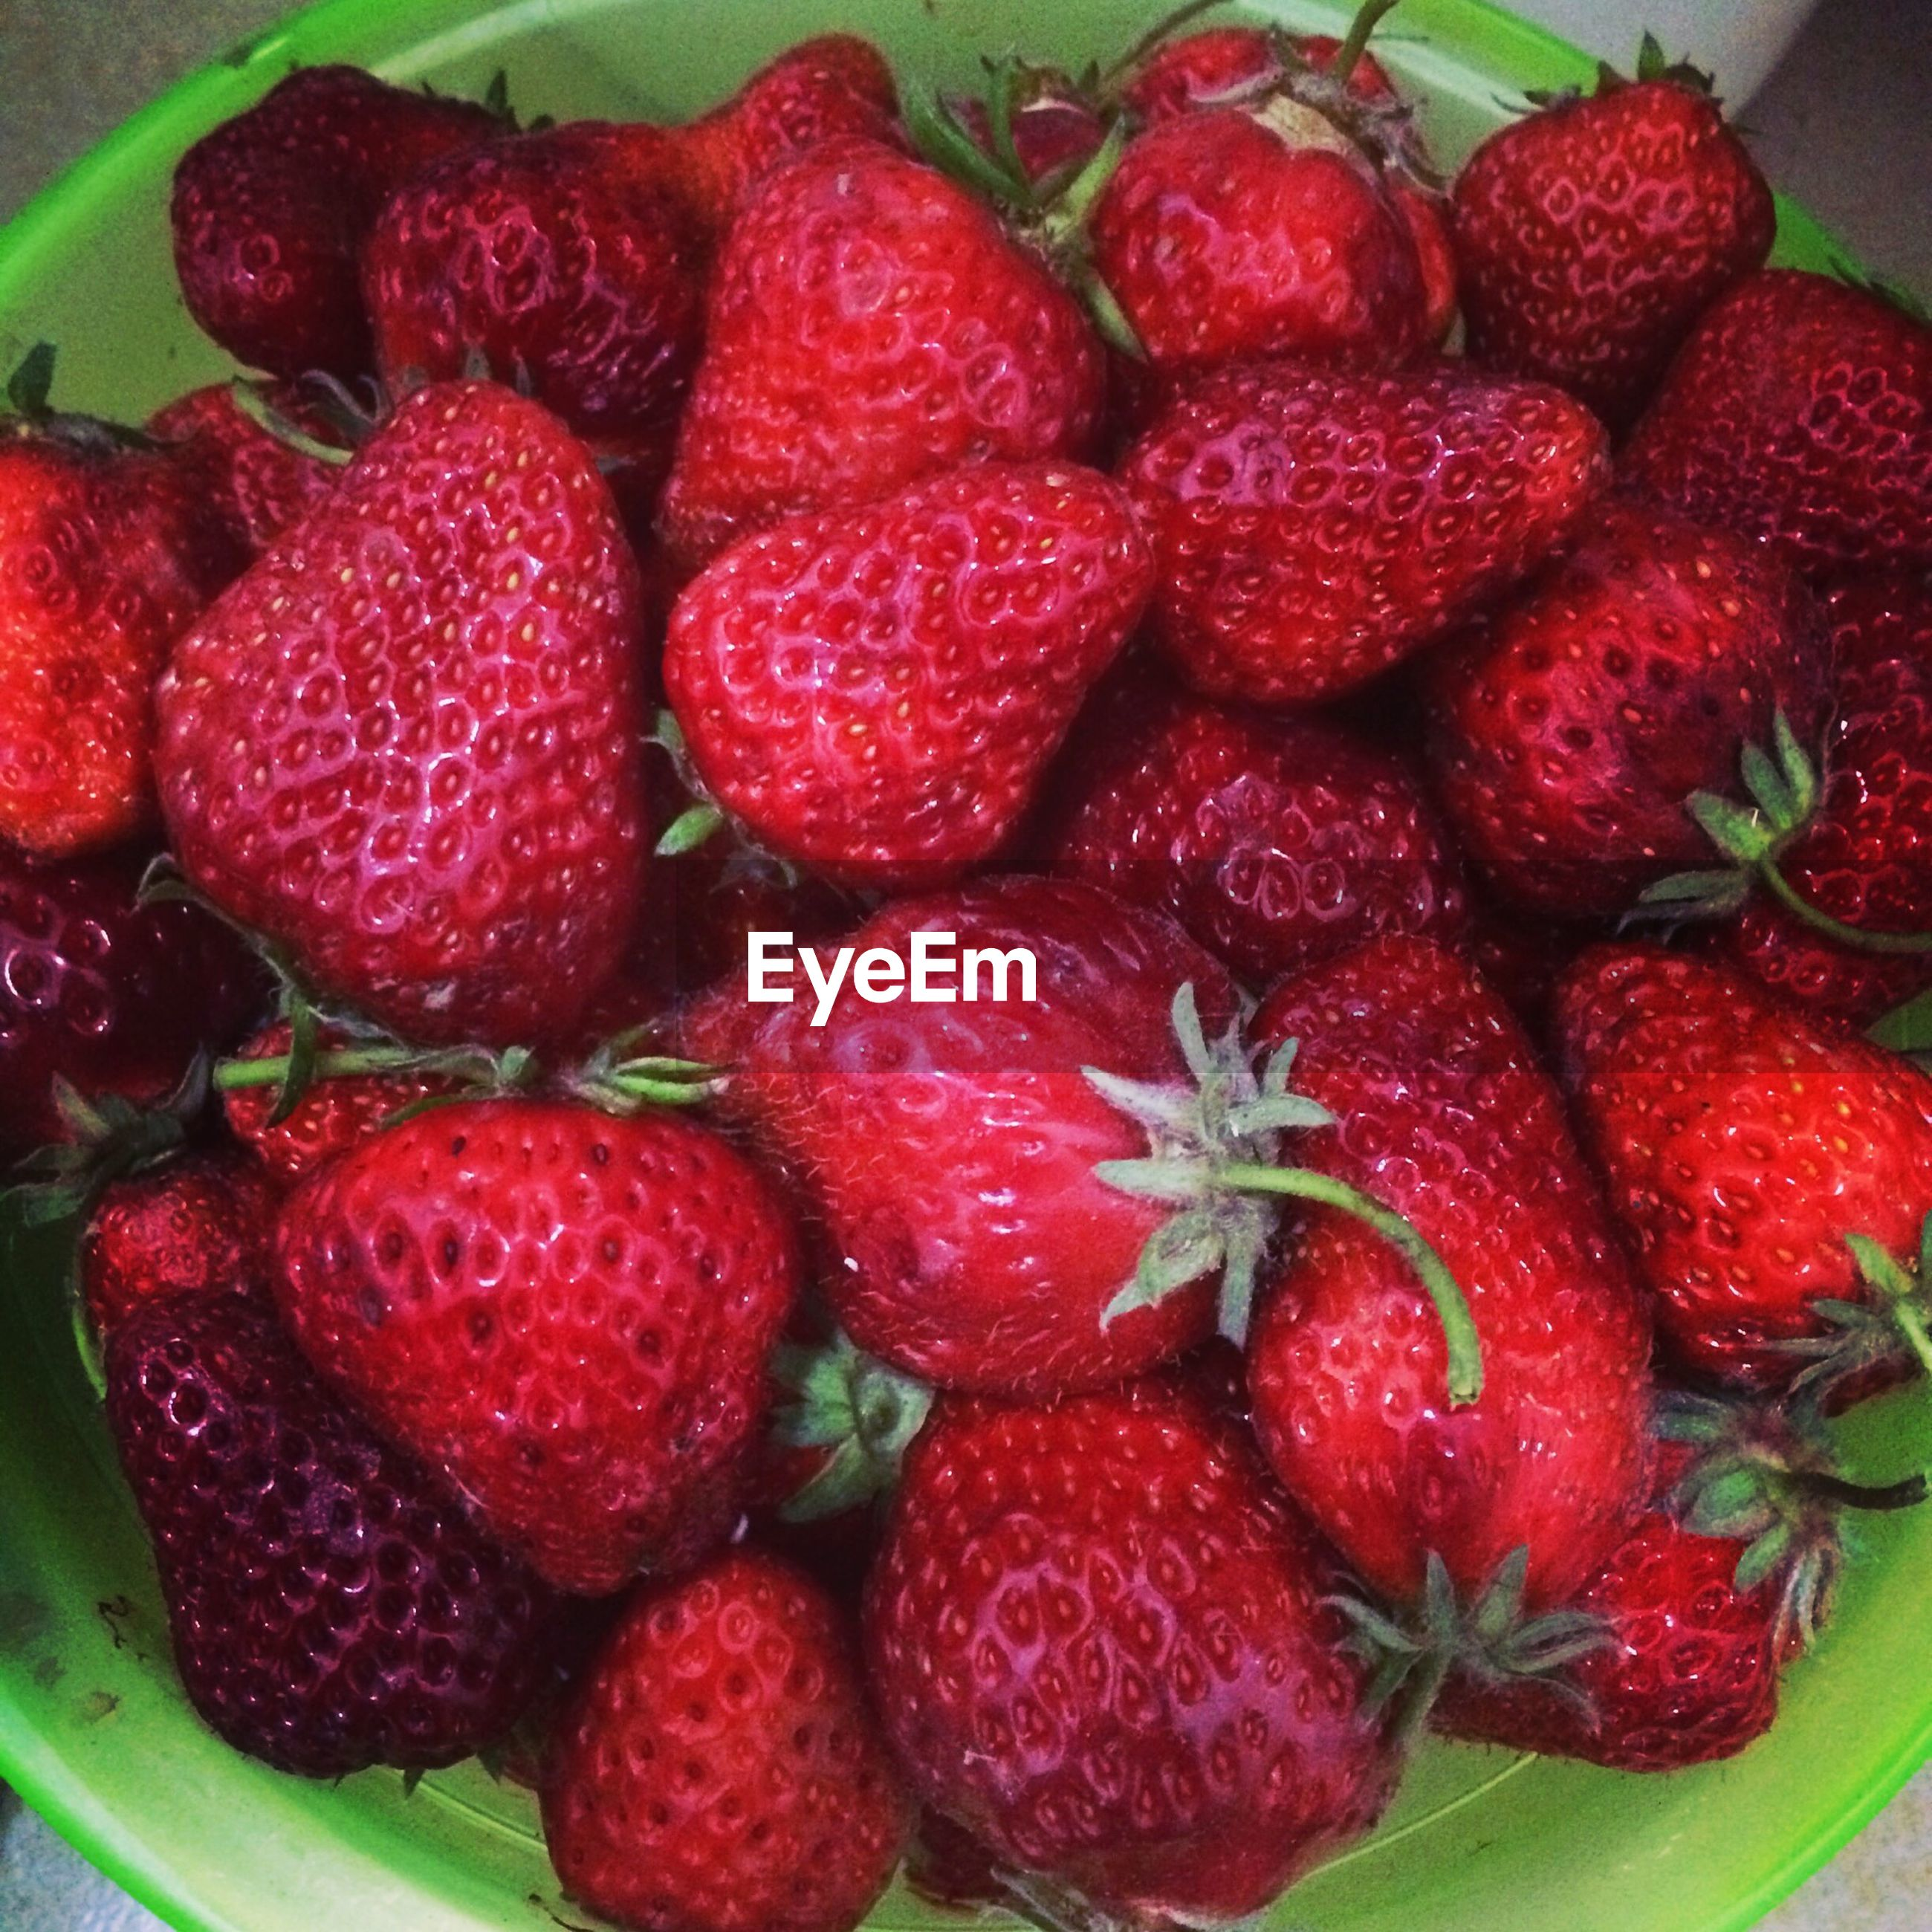 food and drink, food, fruit, freshness, red, healthy eating, strawberry, berry fruit, ripe, raspberry, indoors, close-up, abundance, large group of objects, still life, juicy, organic, no people, berry, healthy lifestyle